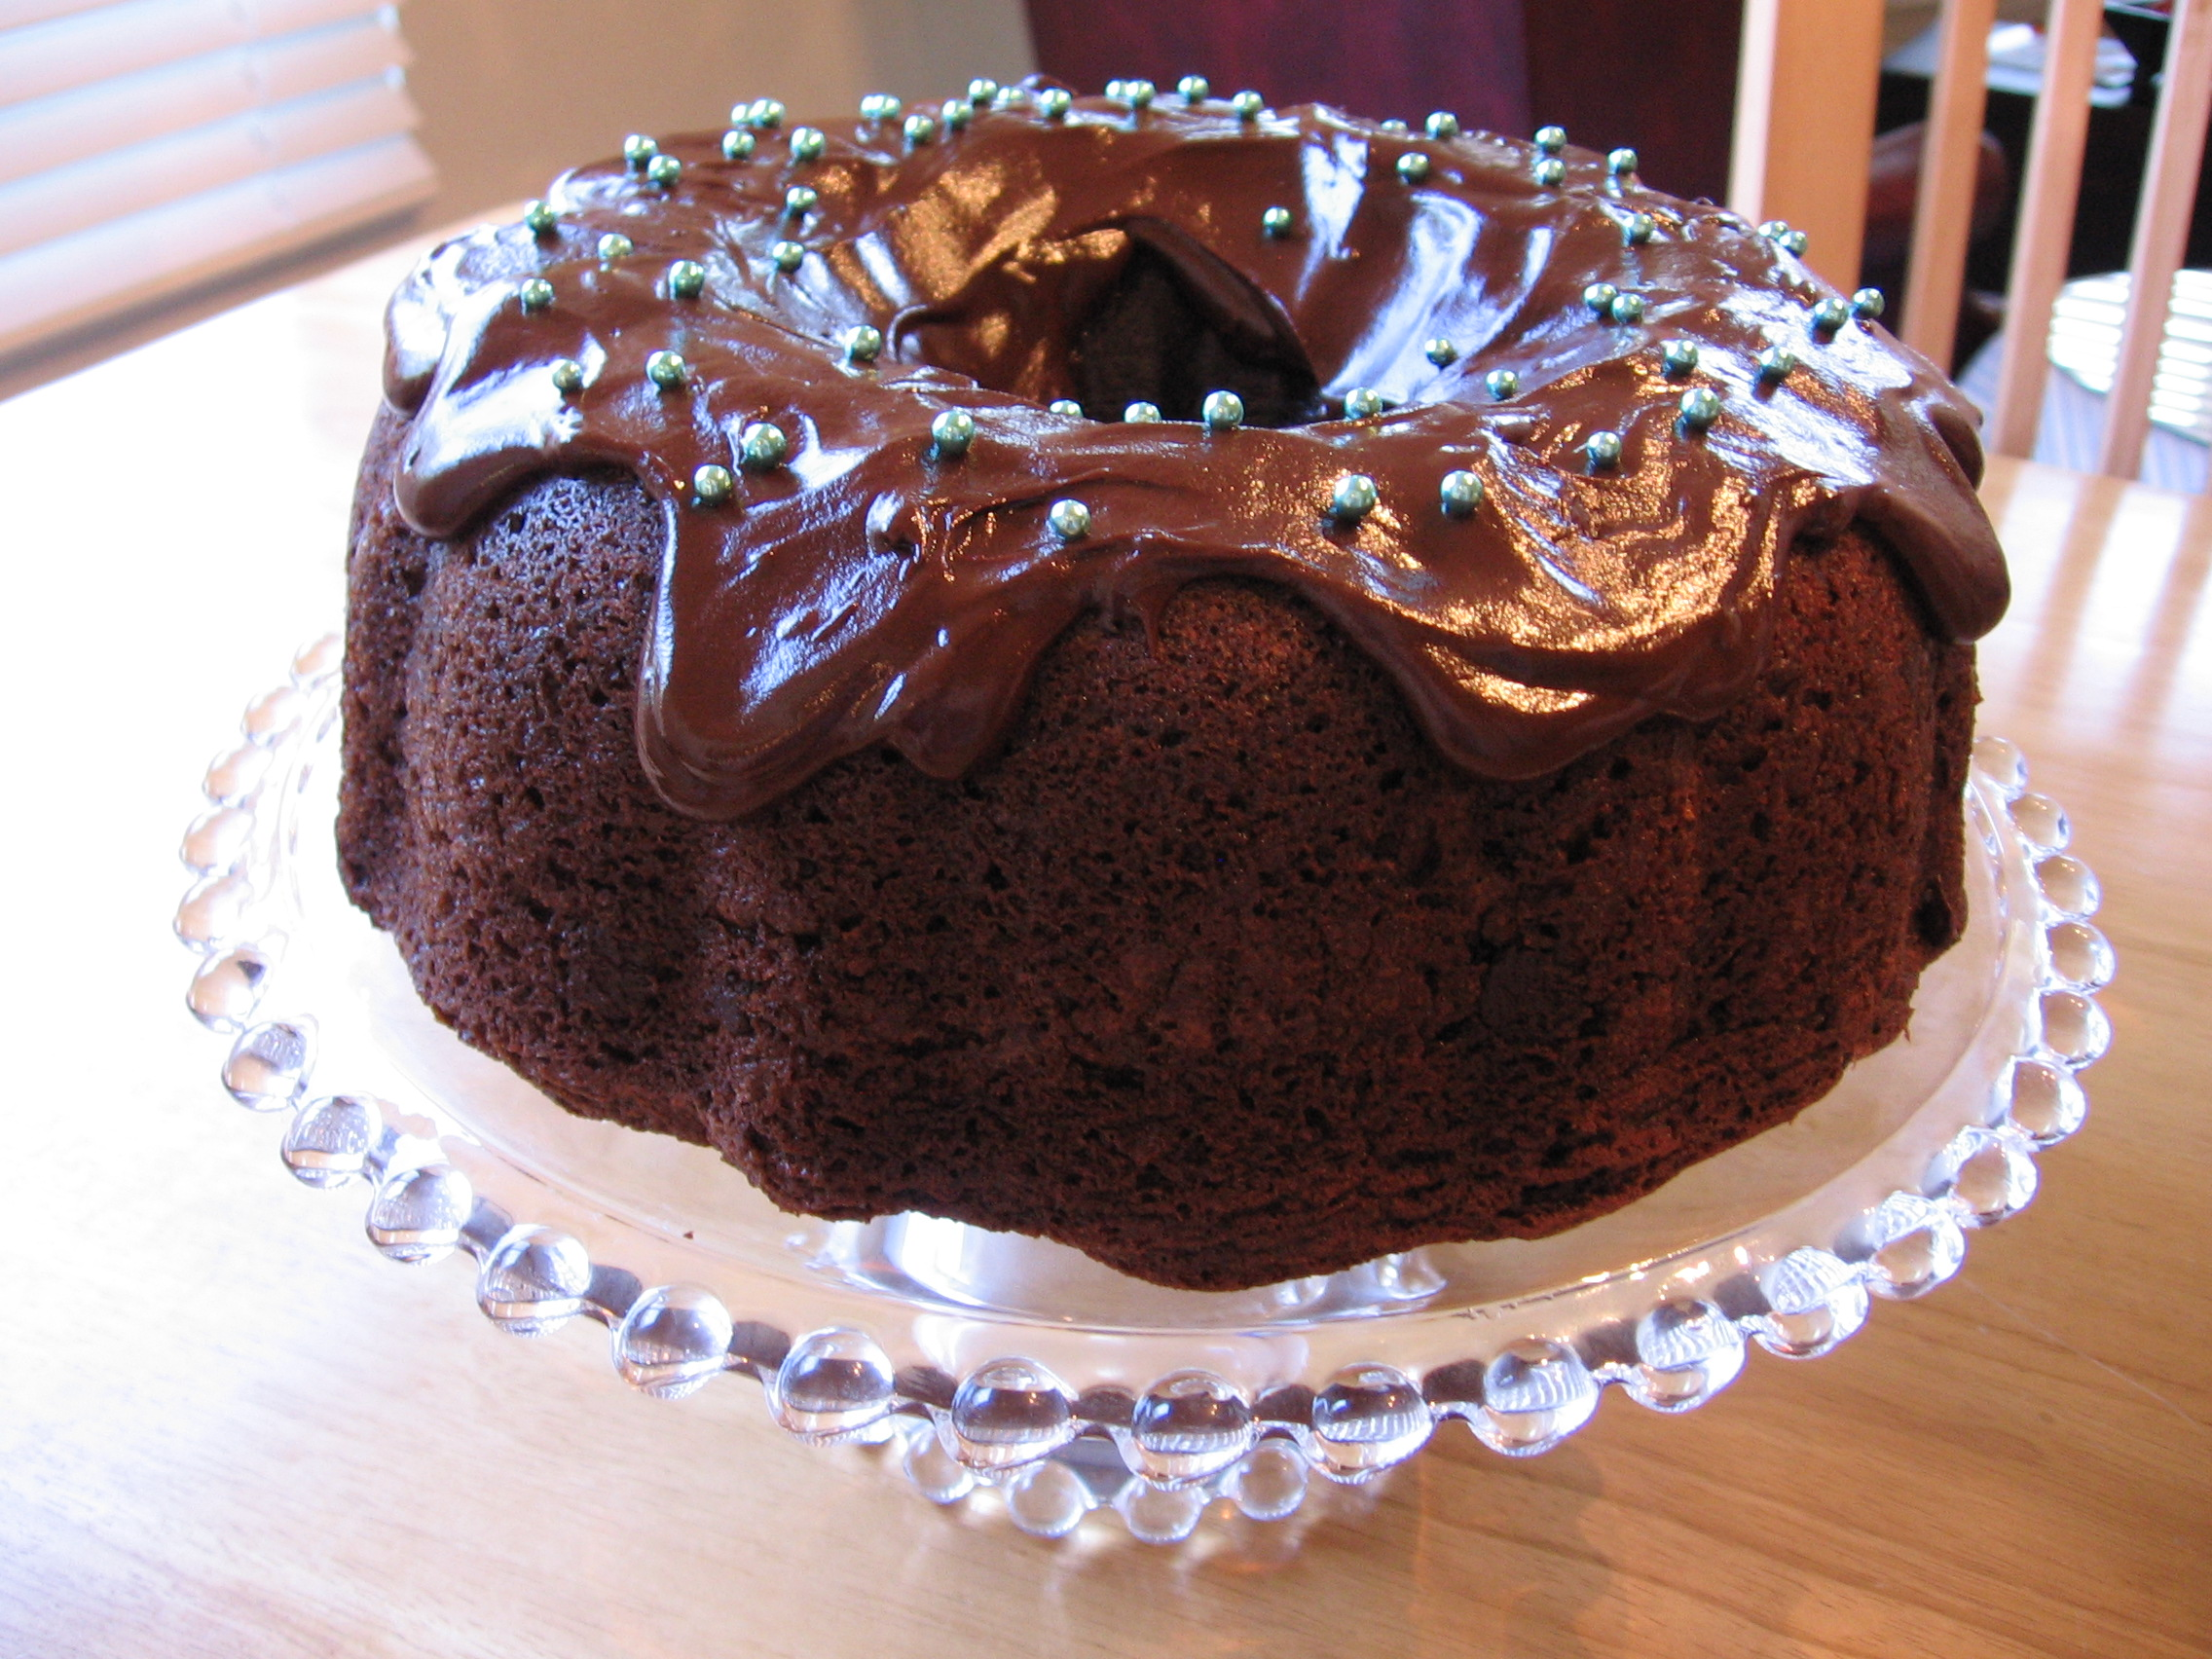 Easy Homemade Chocolate Cake Recipe And The Best: Super Moist Chocolate Bundt Cake